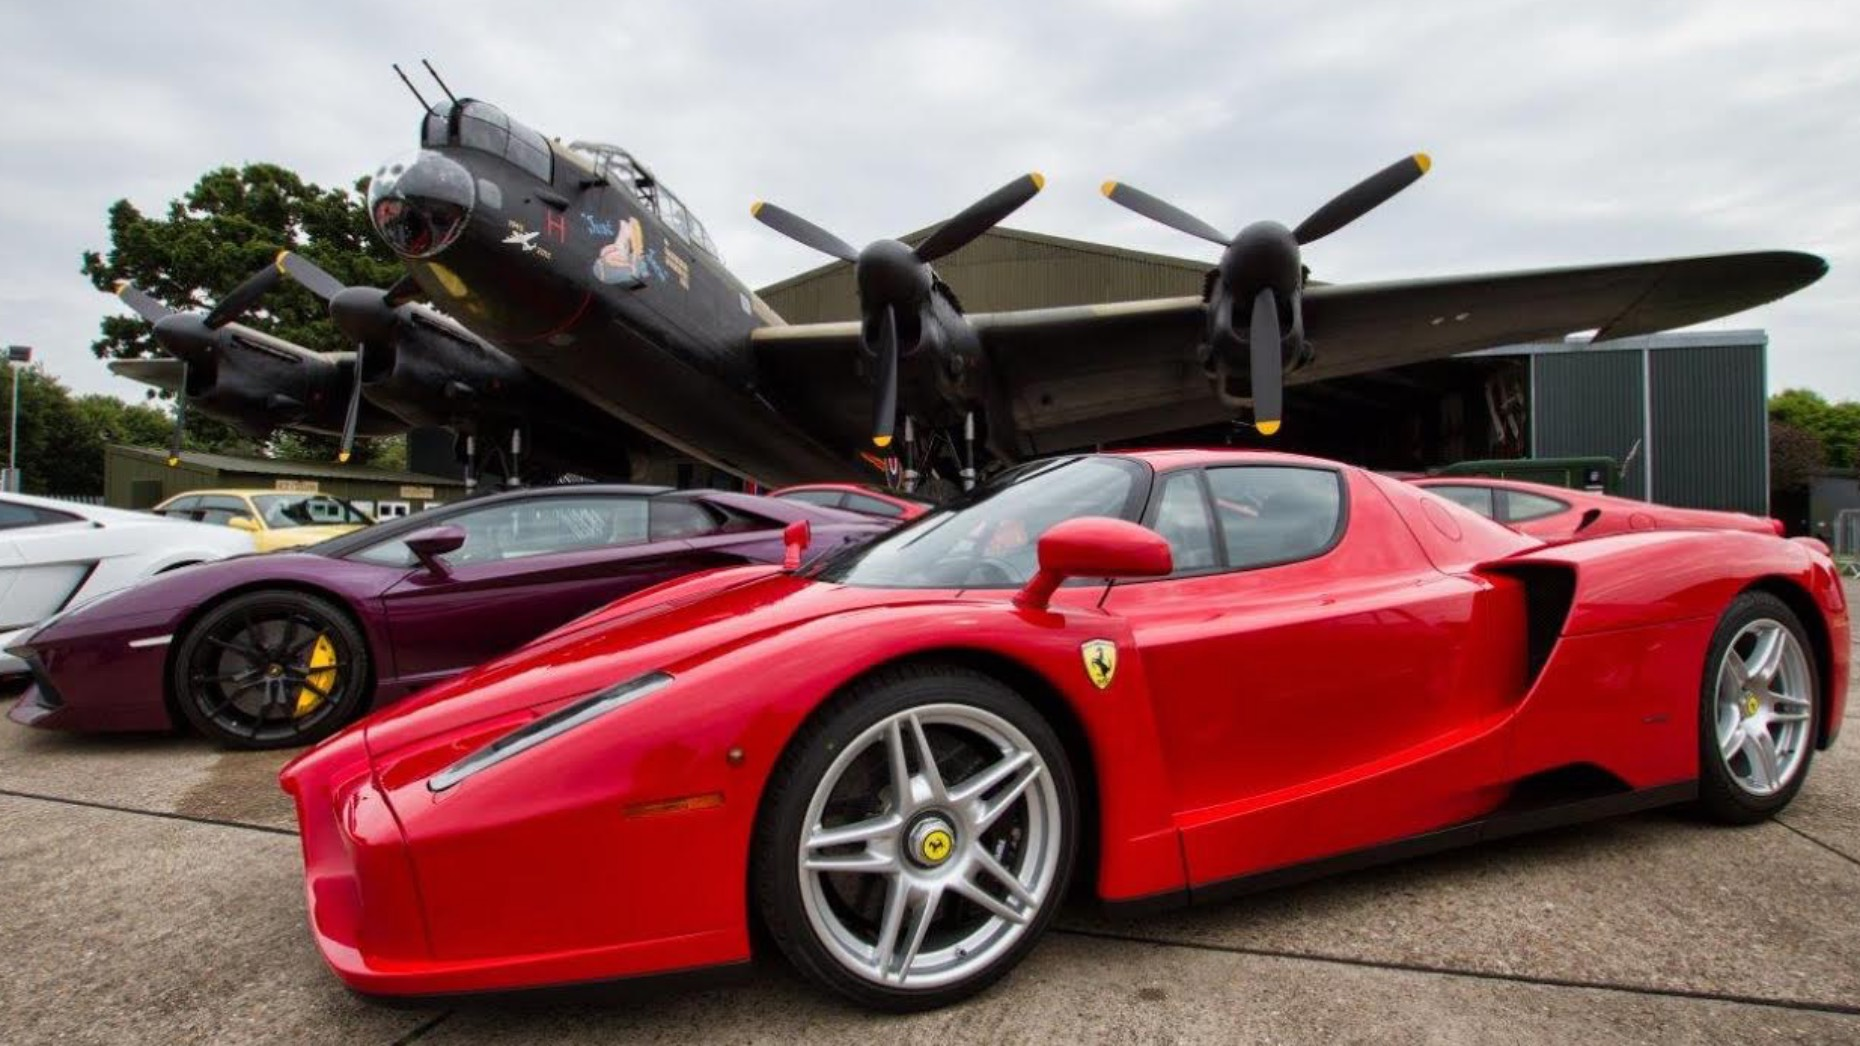 World-class cars including Ferrari, Bentley, Aston Martin and Porsche will be on display at the Props and Pistons Show